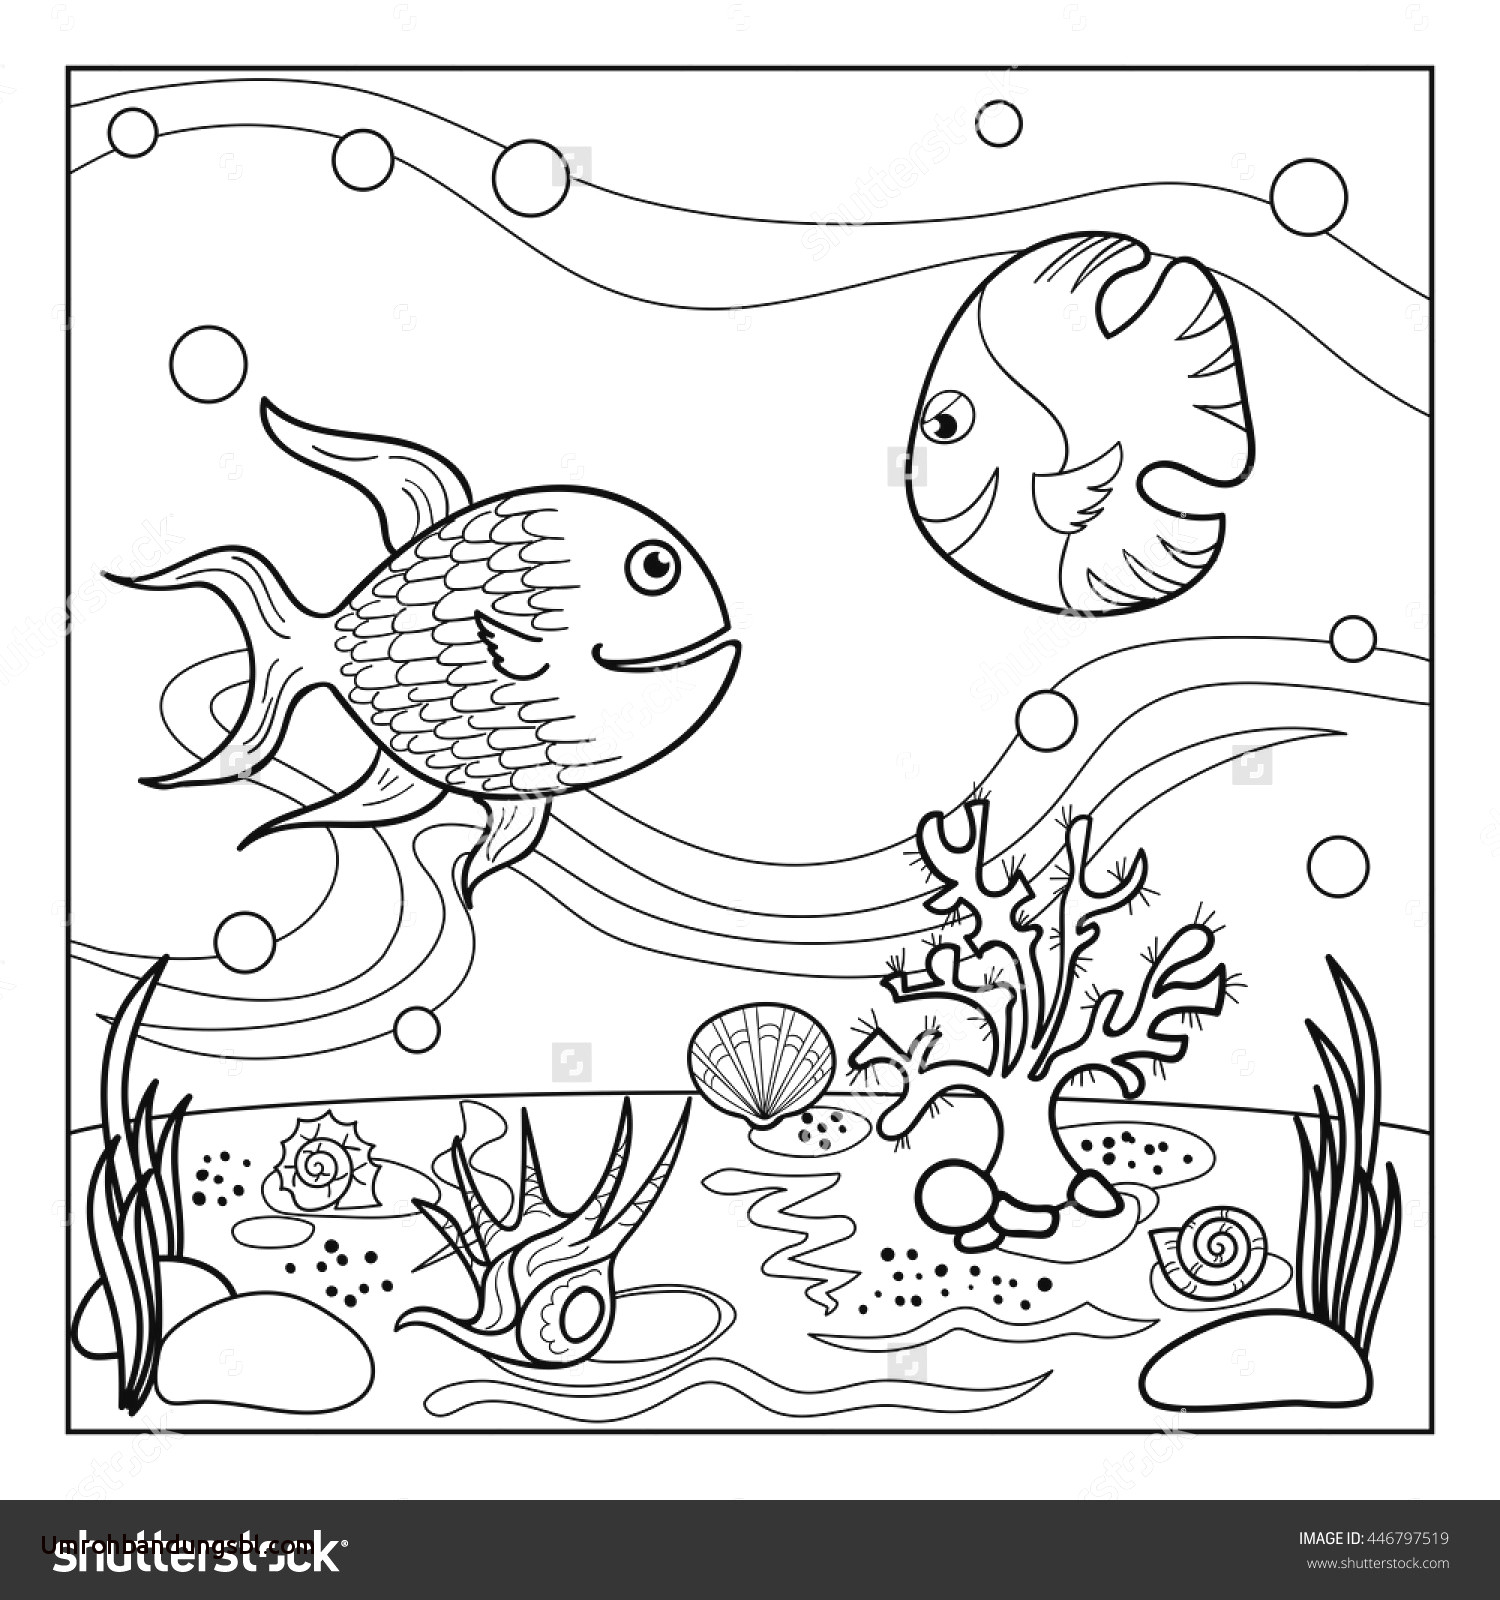 turn pictures into coloring pages for free Collection-marvelous track hoe coloring page with turn picture into coloring of turn photo into coloring page 5-a